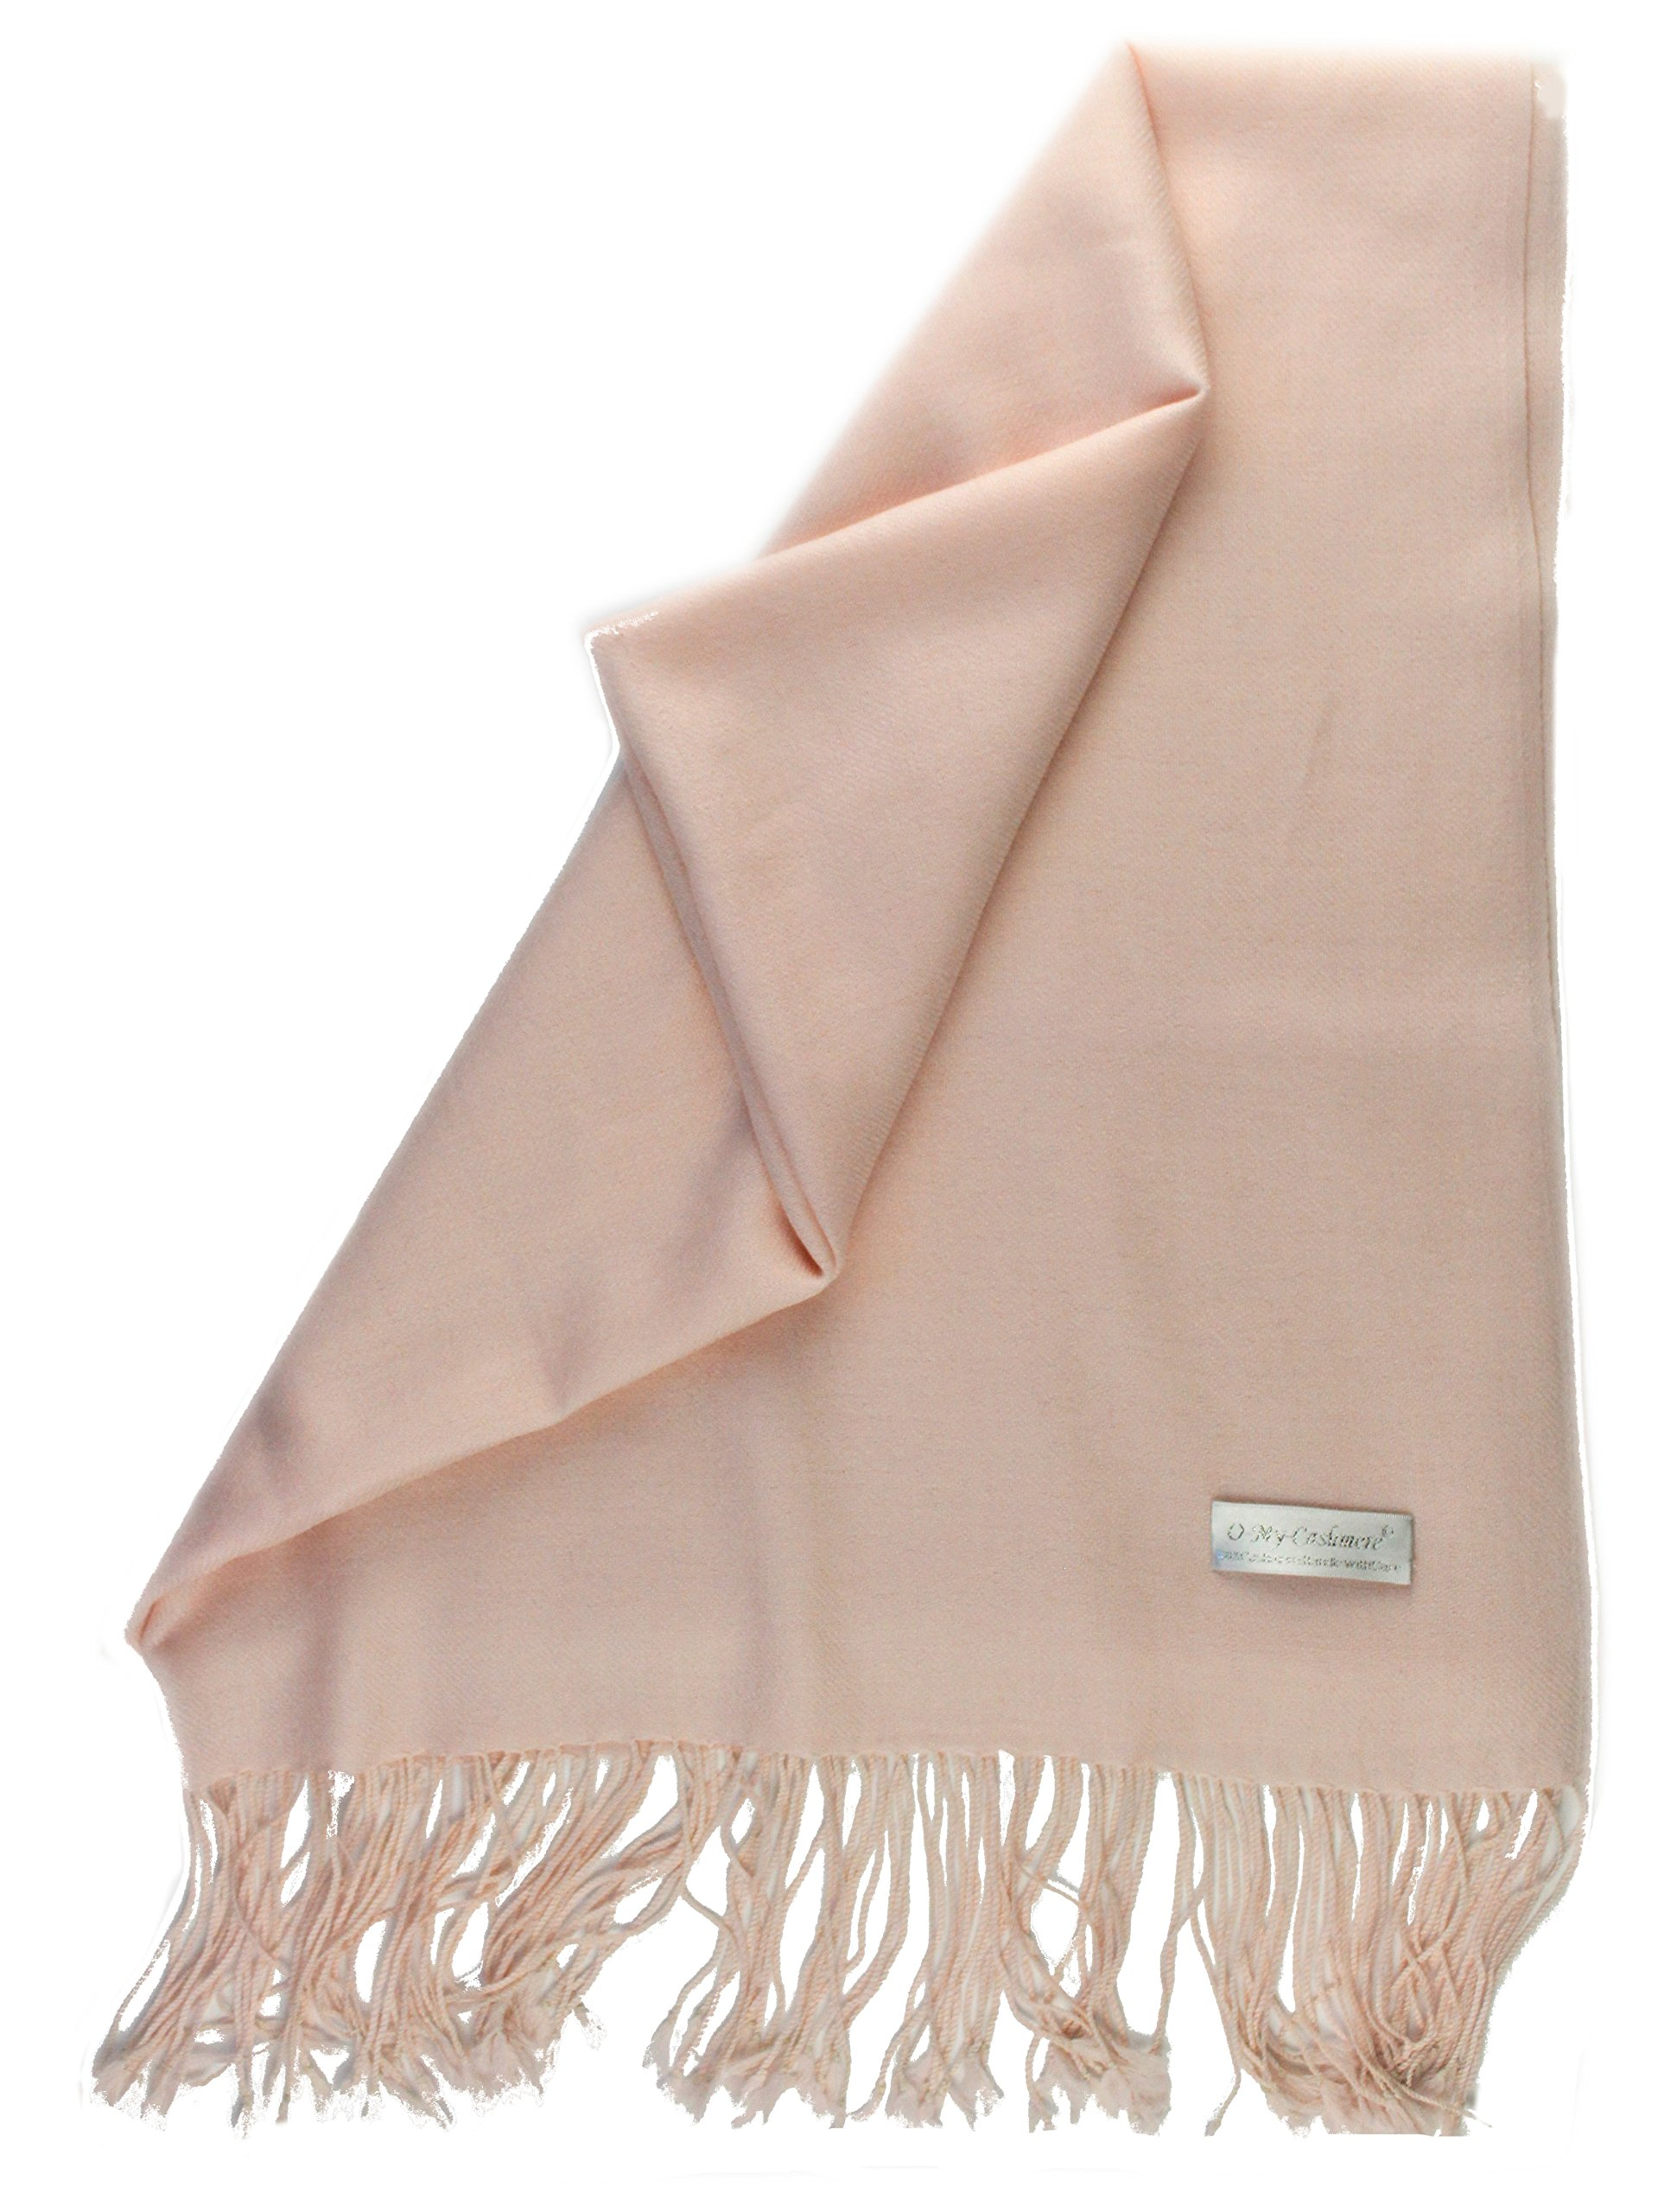 100% Soft Large Cashmere Shawl Scarf Travel Wrap Stole with fringe - Gift Wrapped - Cover blanket Lightweight Tissue Weight Solid Color